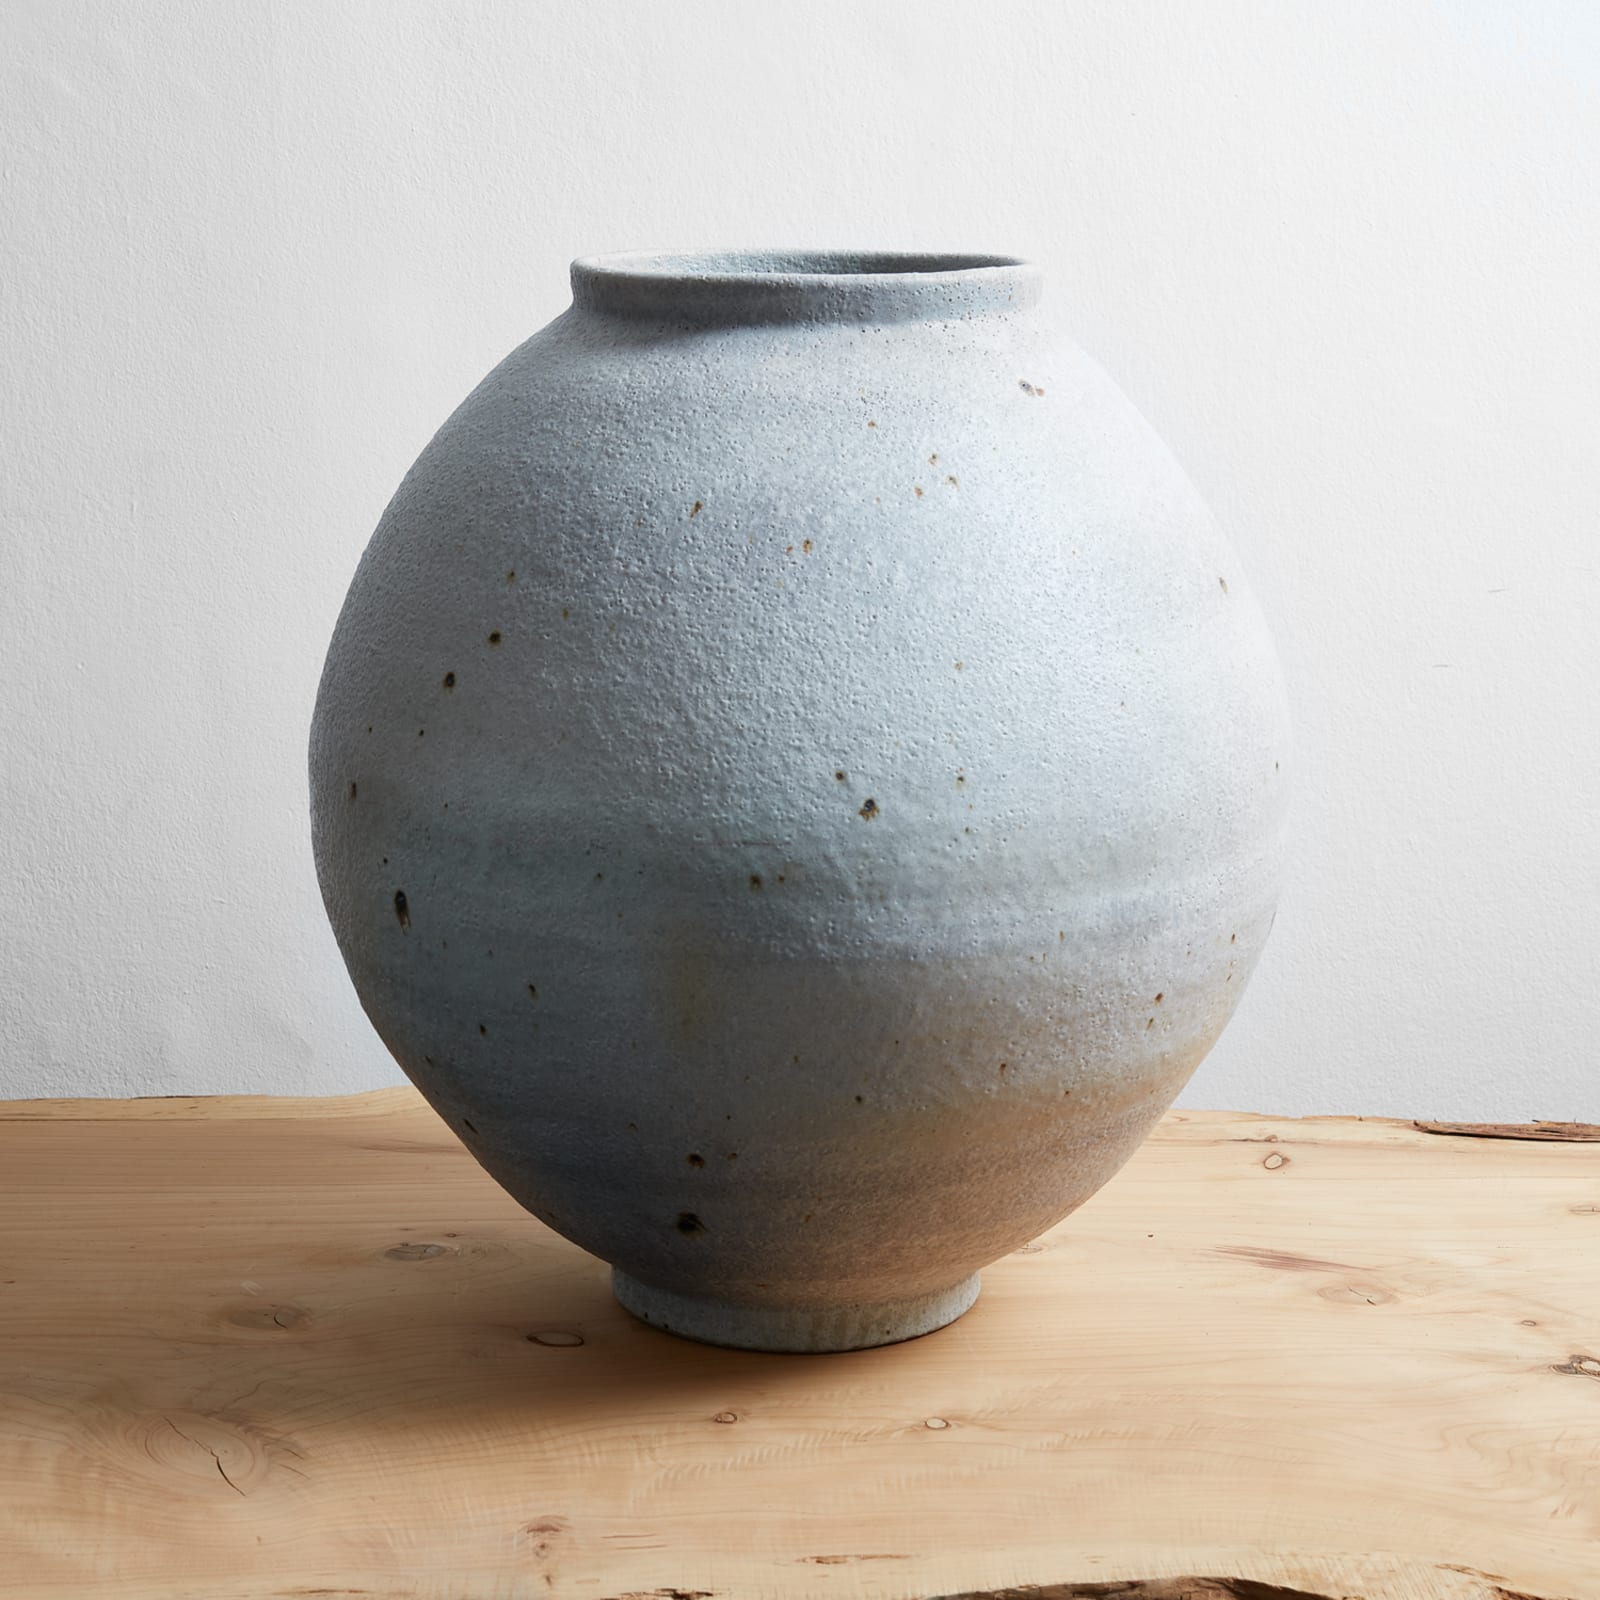 Mun Pyung  Salt Moon Jar, 2016  White porcelain and salt  58 x 50 x 50 cm